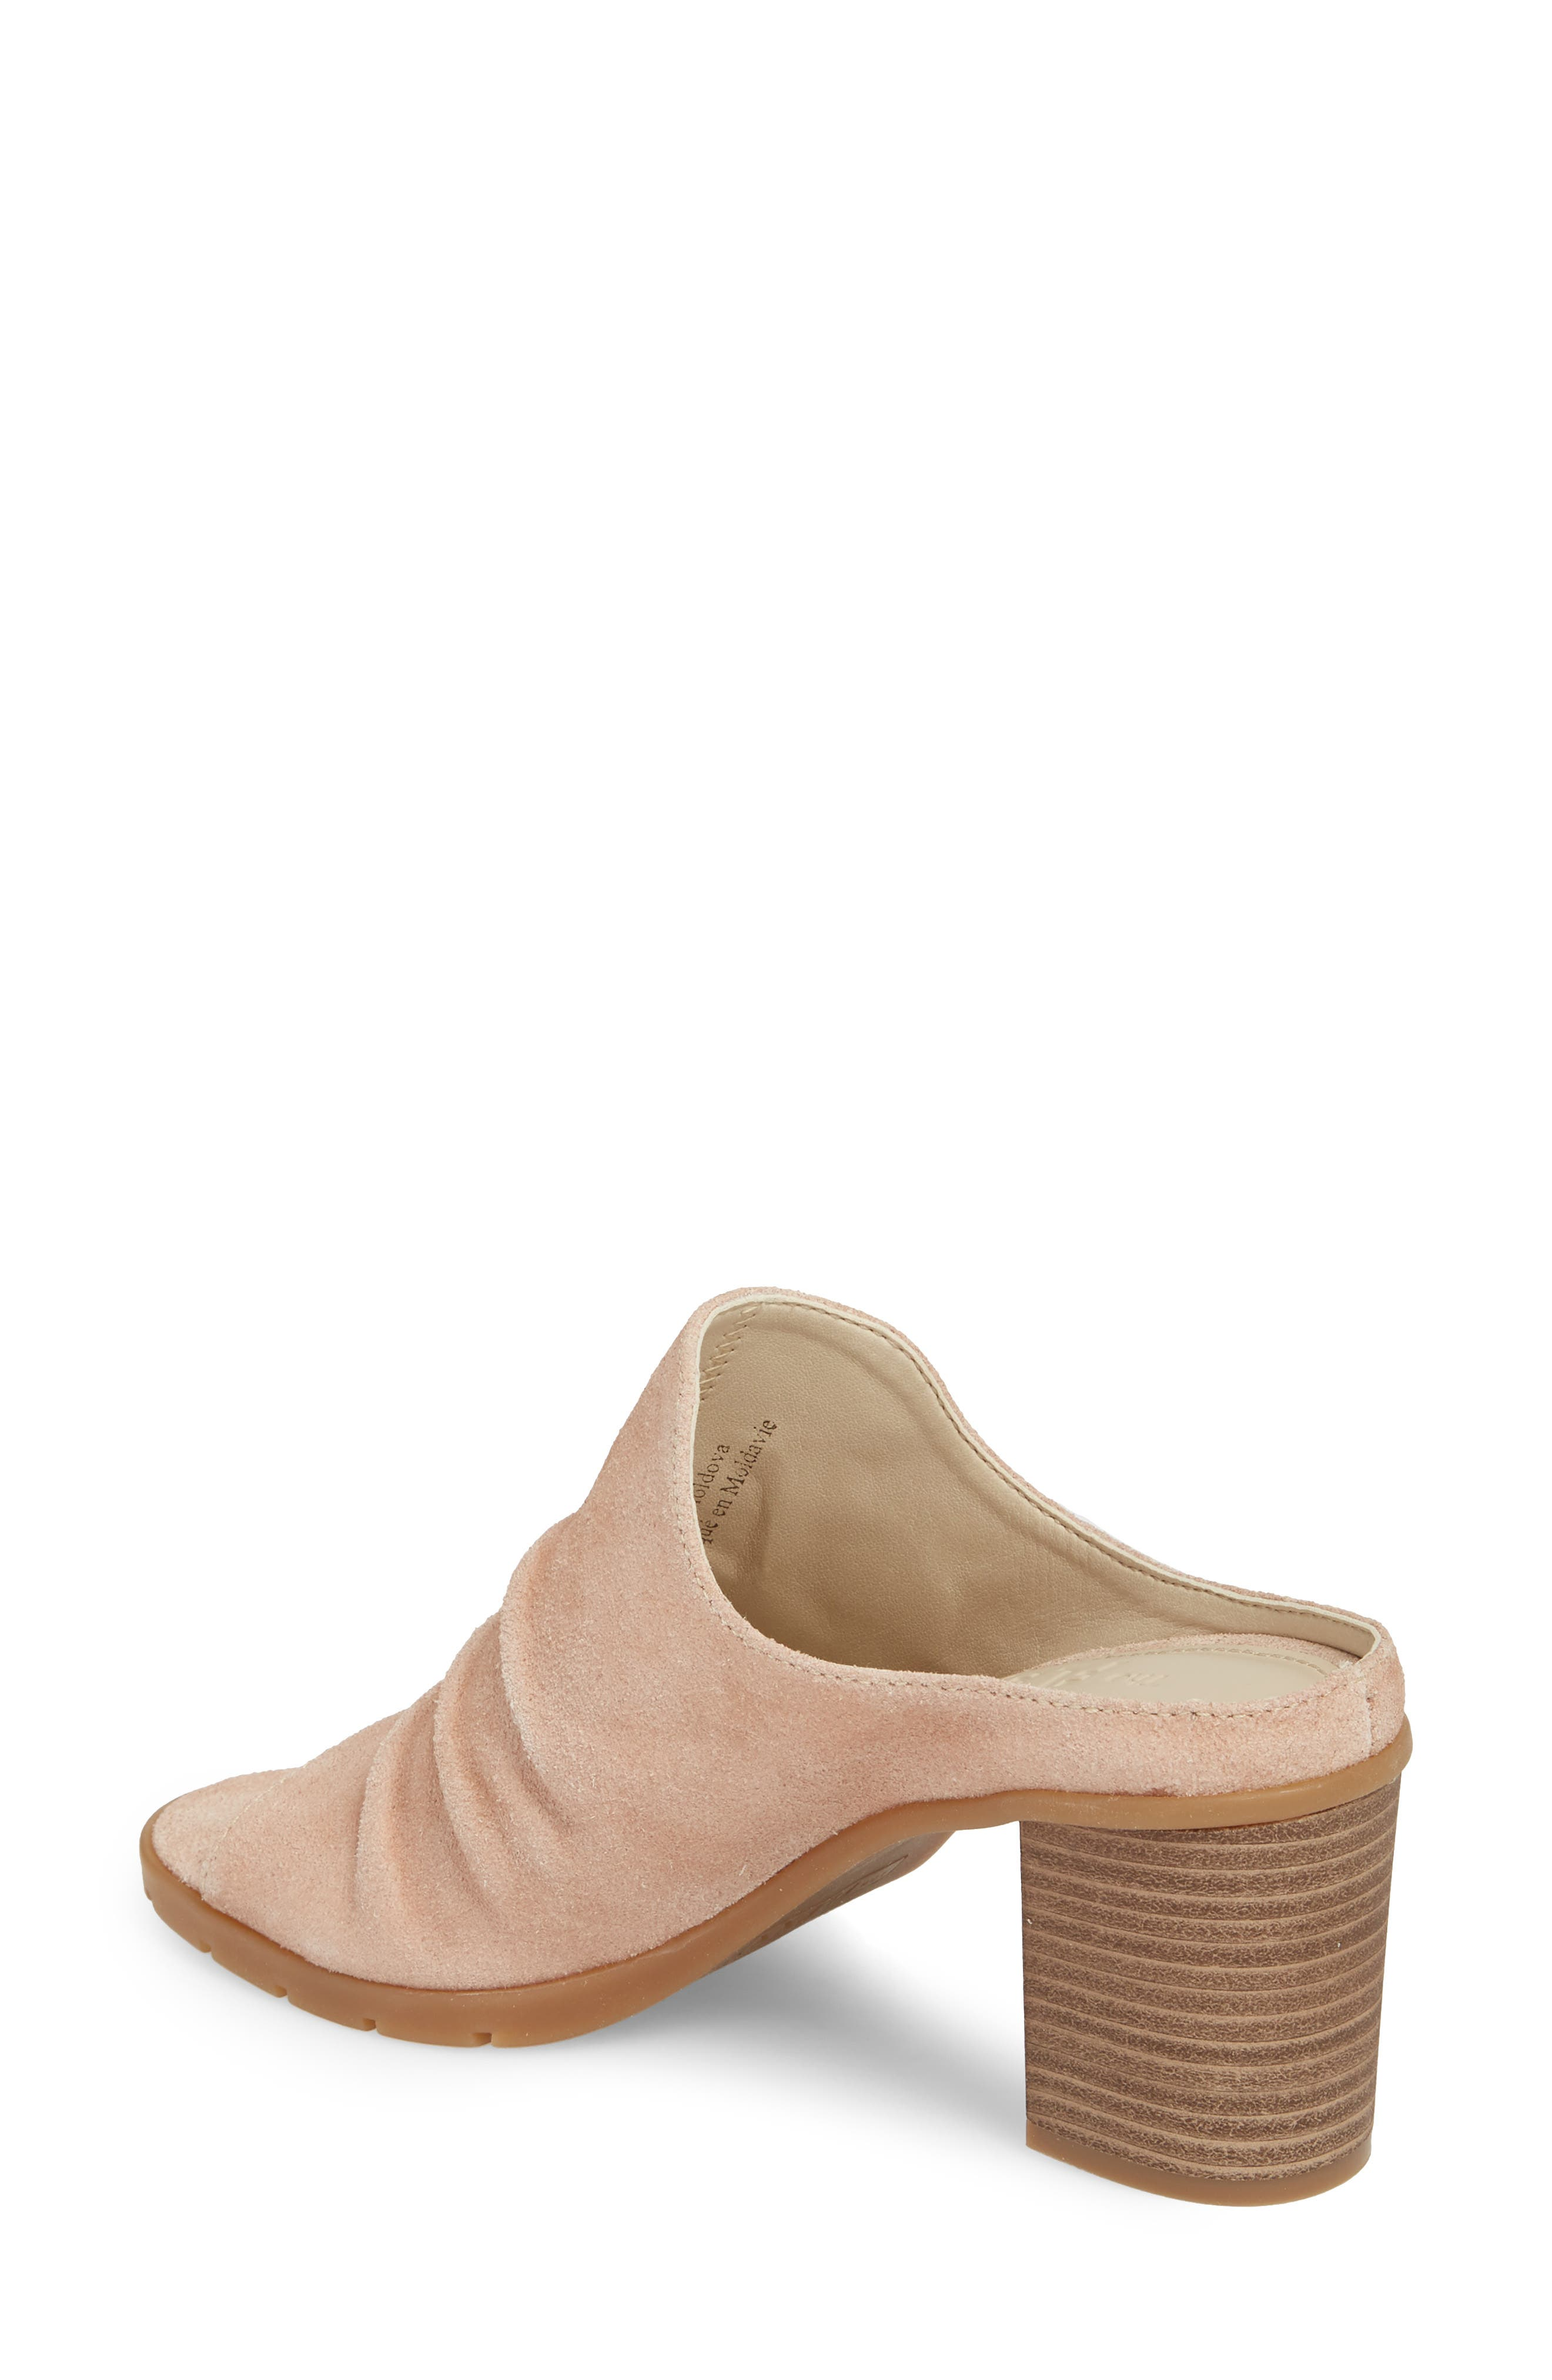 Aim to Pleat Mule,                             Alternate thumbnail 2, color,                             ROSE GOLD LEATHER